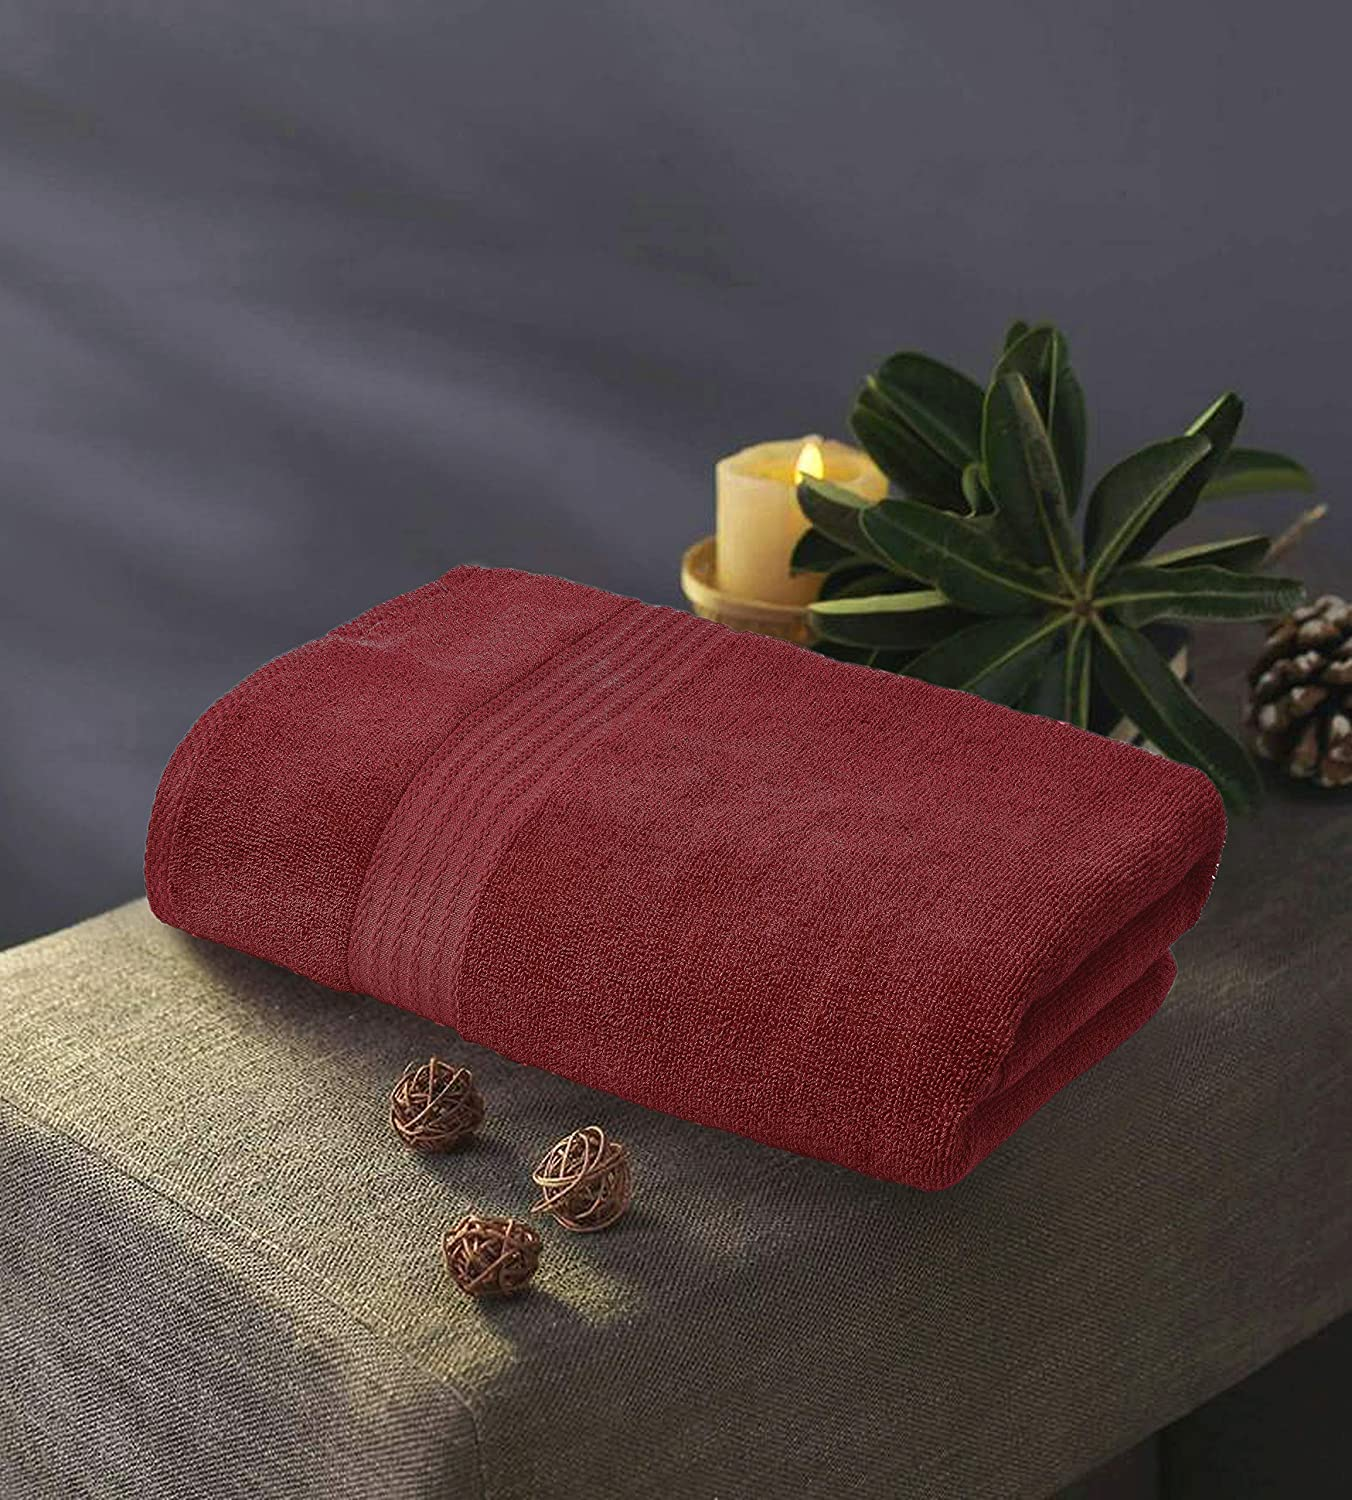 Ideal for Everyday use Machine Washable Burgundy GLAMBURG Premium Cotton Oversized 2 Pack Bath Sheet 35x70-100/% Pure Cotton Ultra Soft /& Highly Absorbent